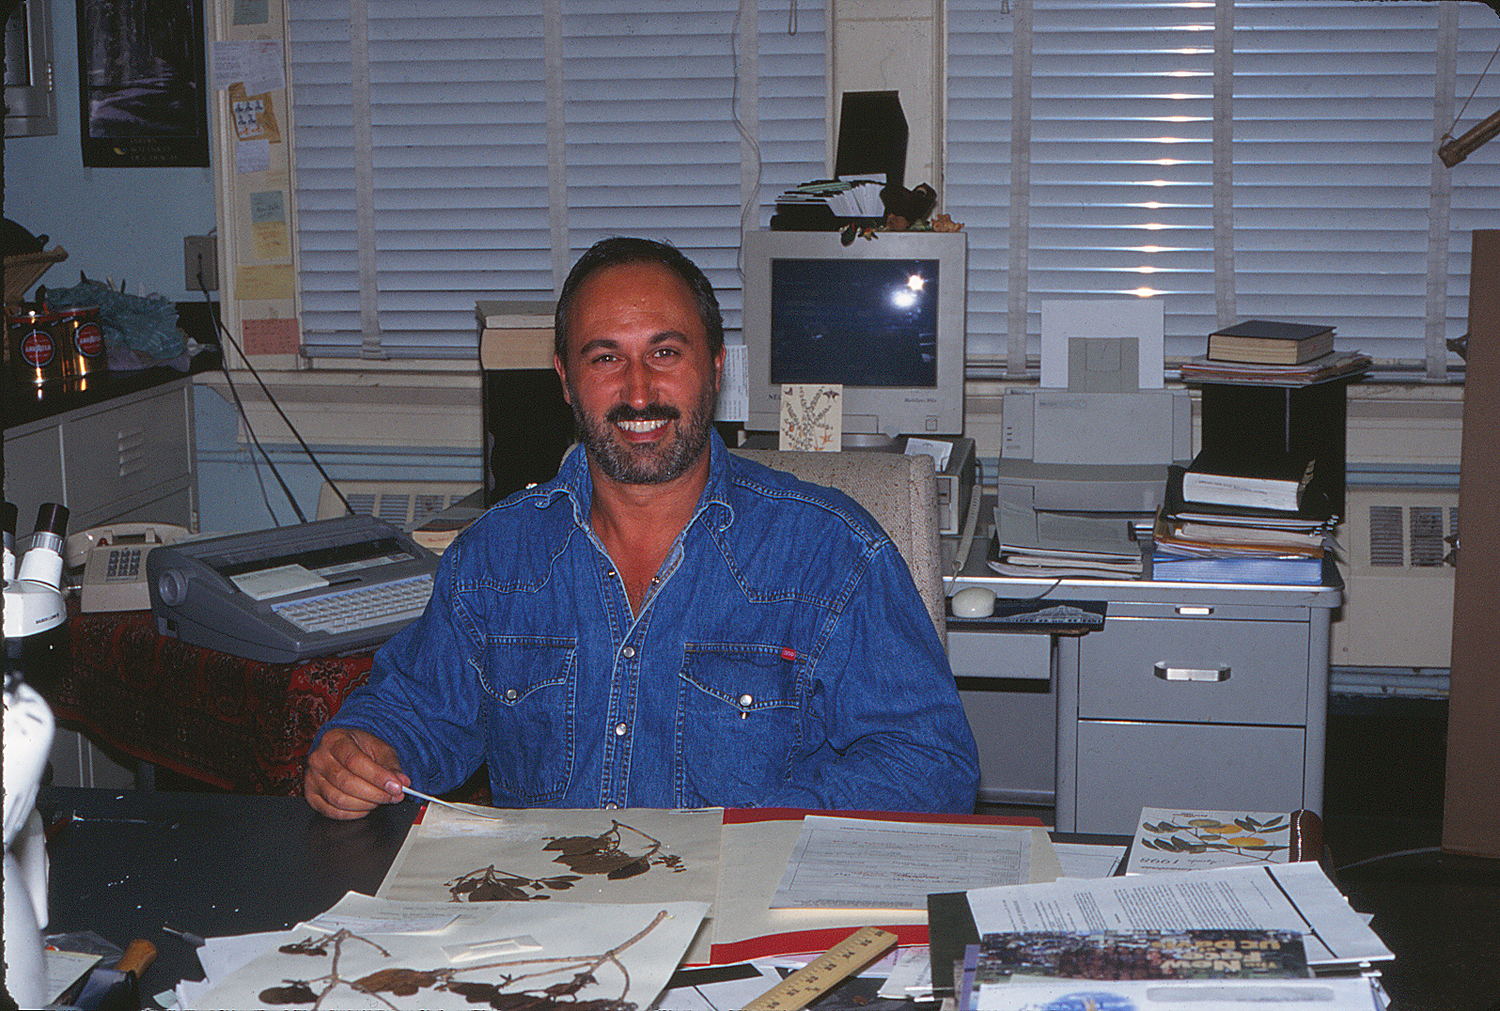 Piero Delprete in 1998. Photo by S. A. Mori.